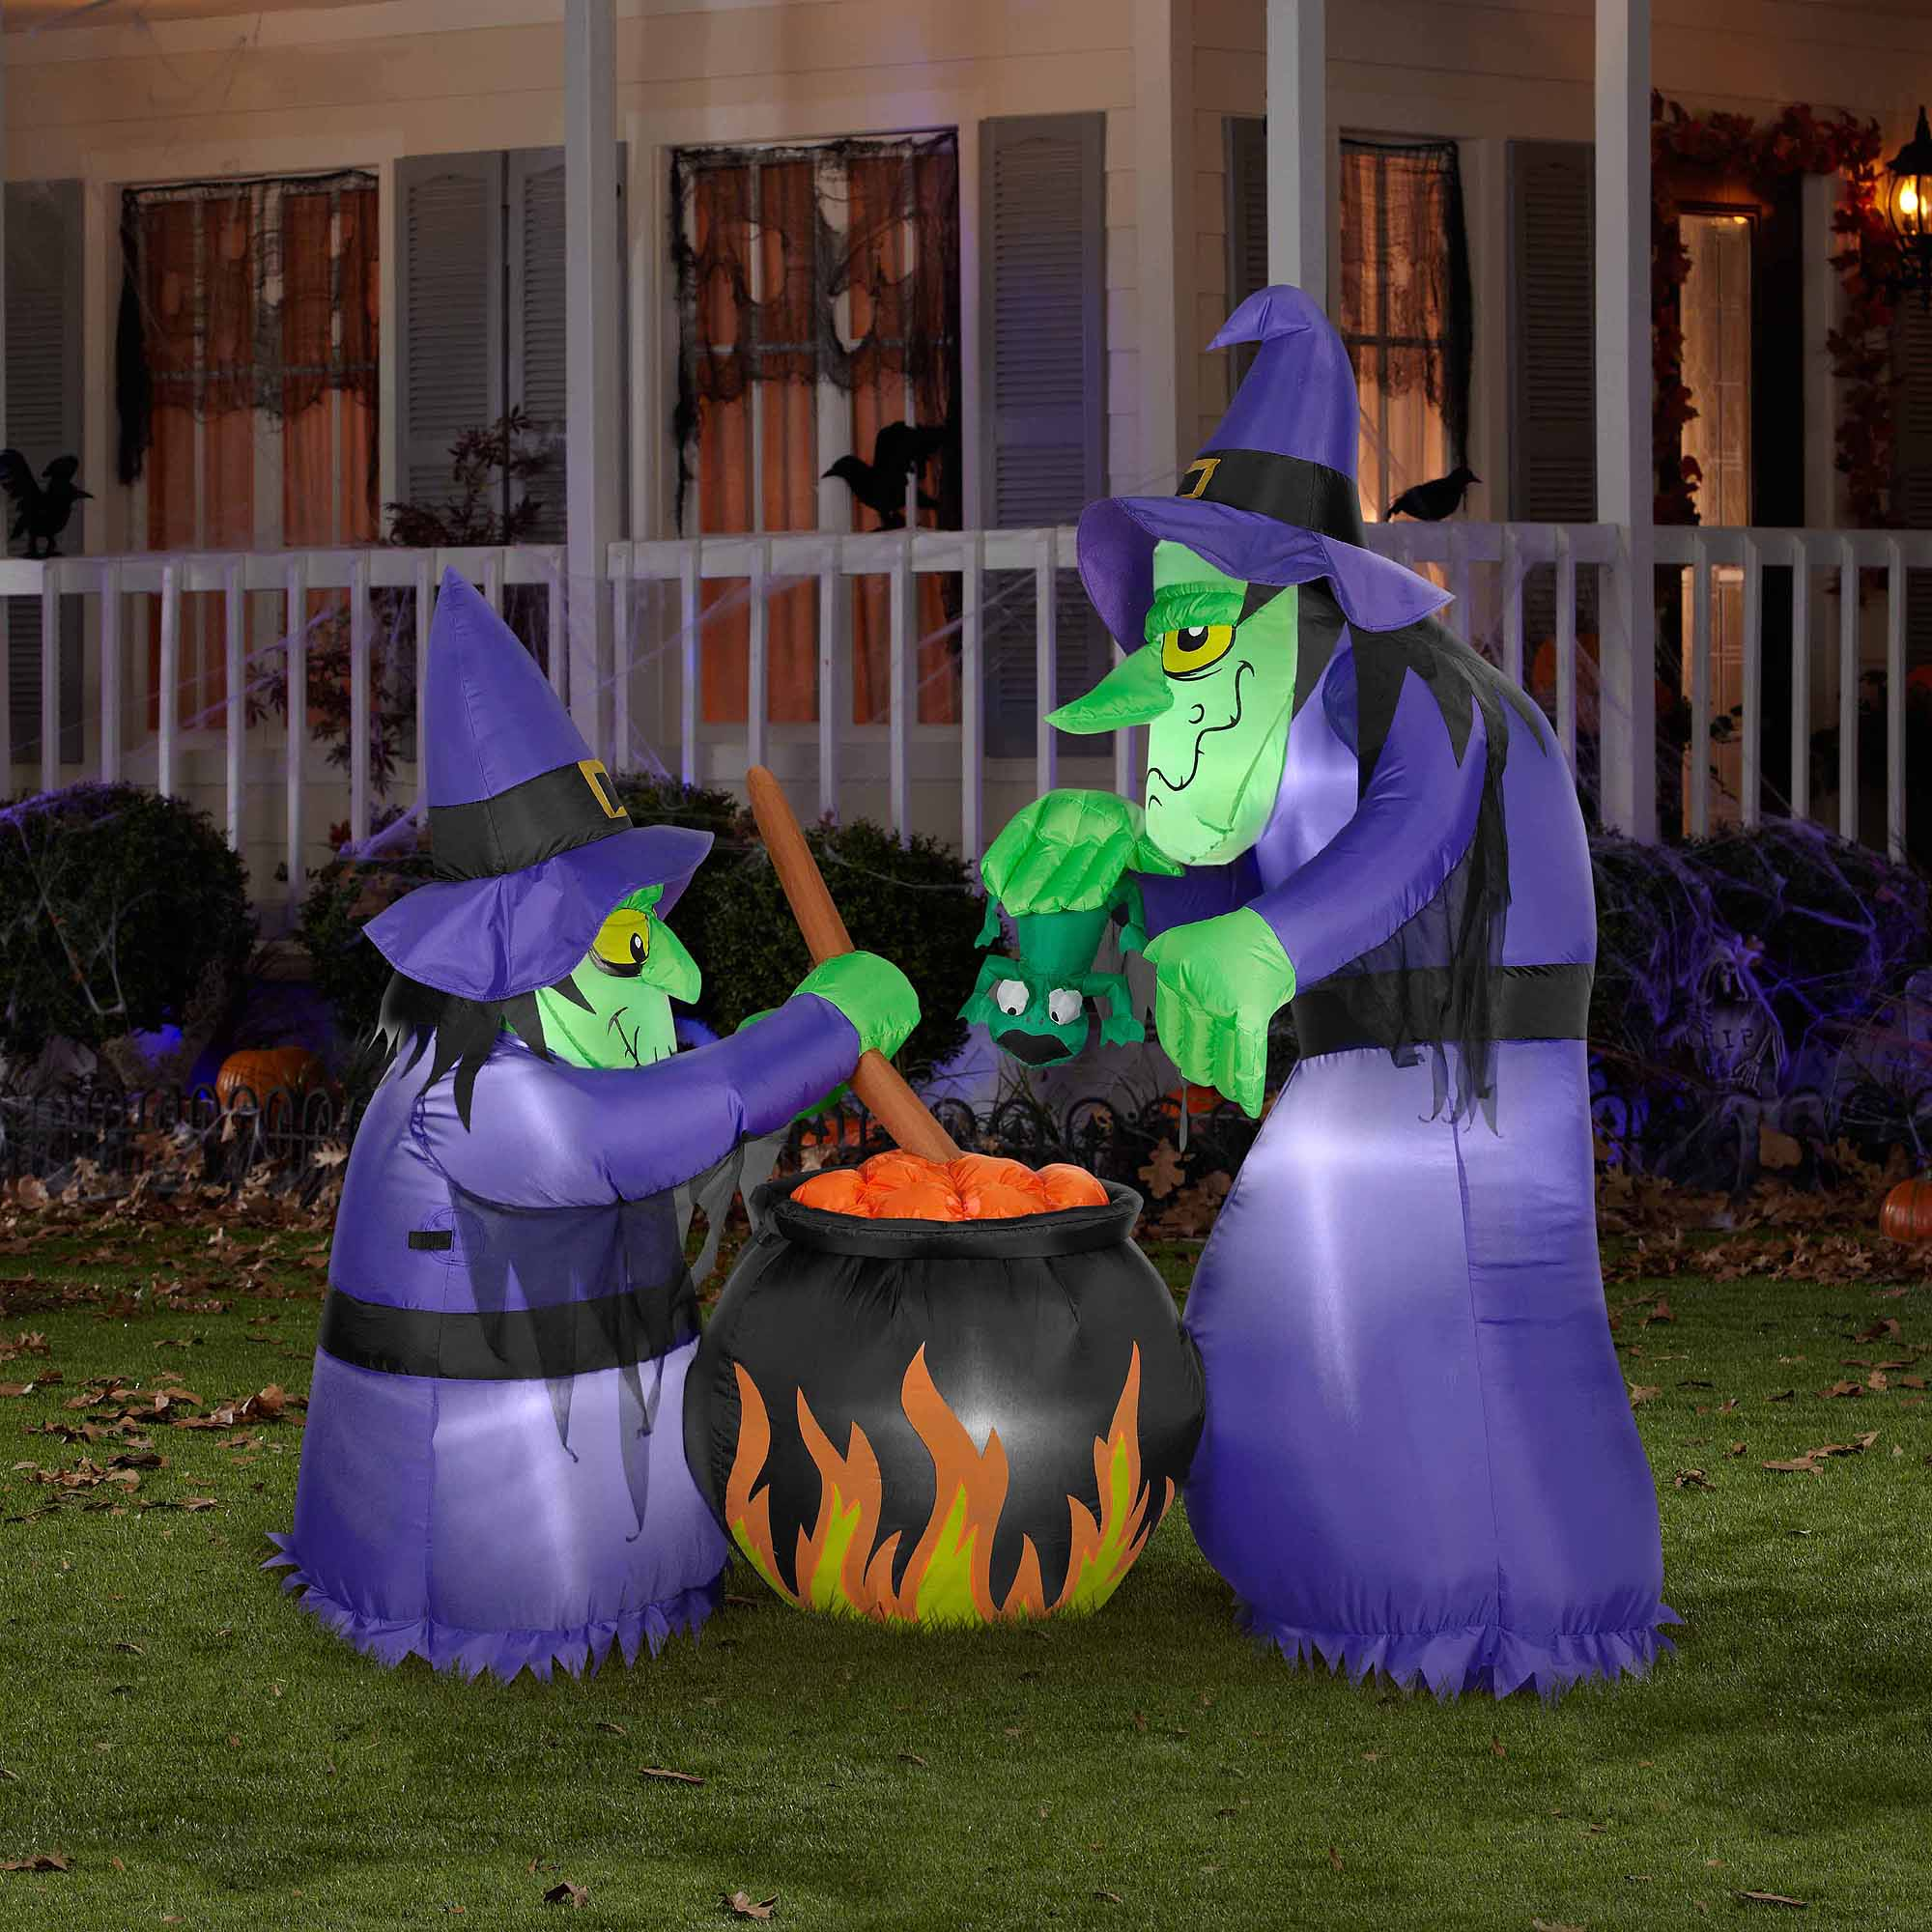 Gemmy 6'H x 4'W Airblown Halloween Inflatable Double Bubble Witches with Cauldron